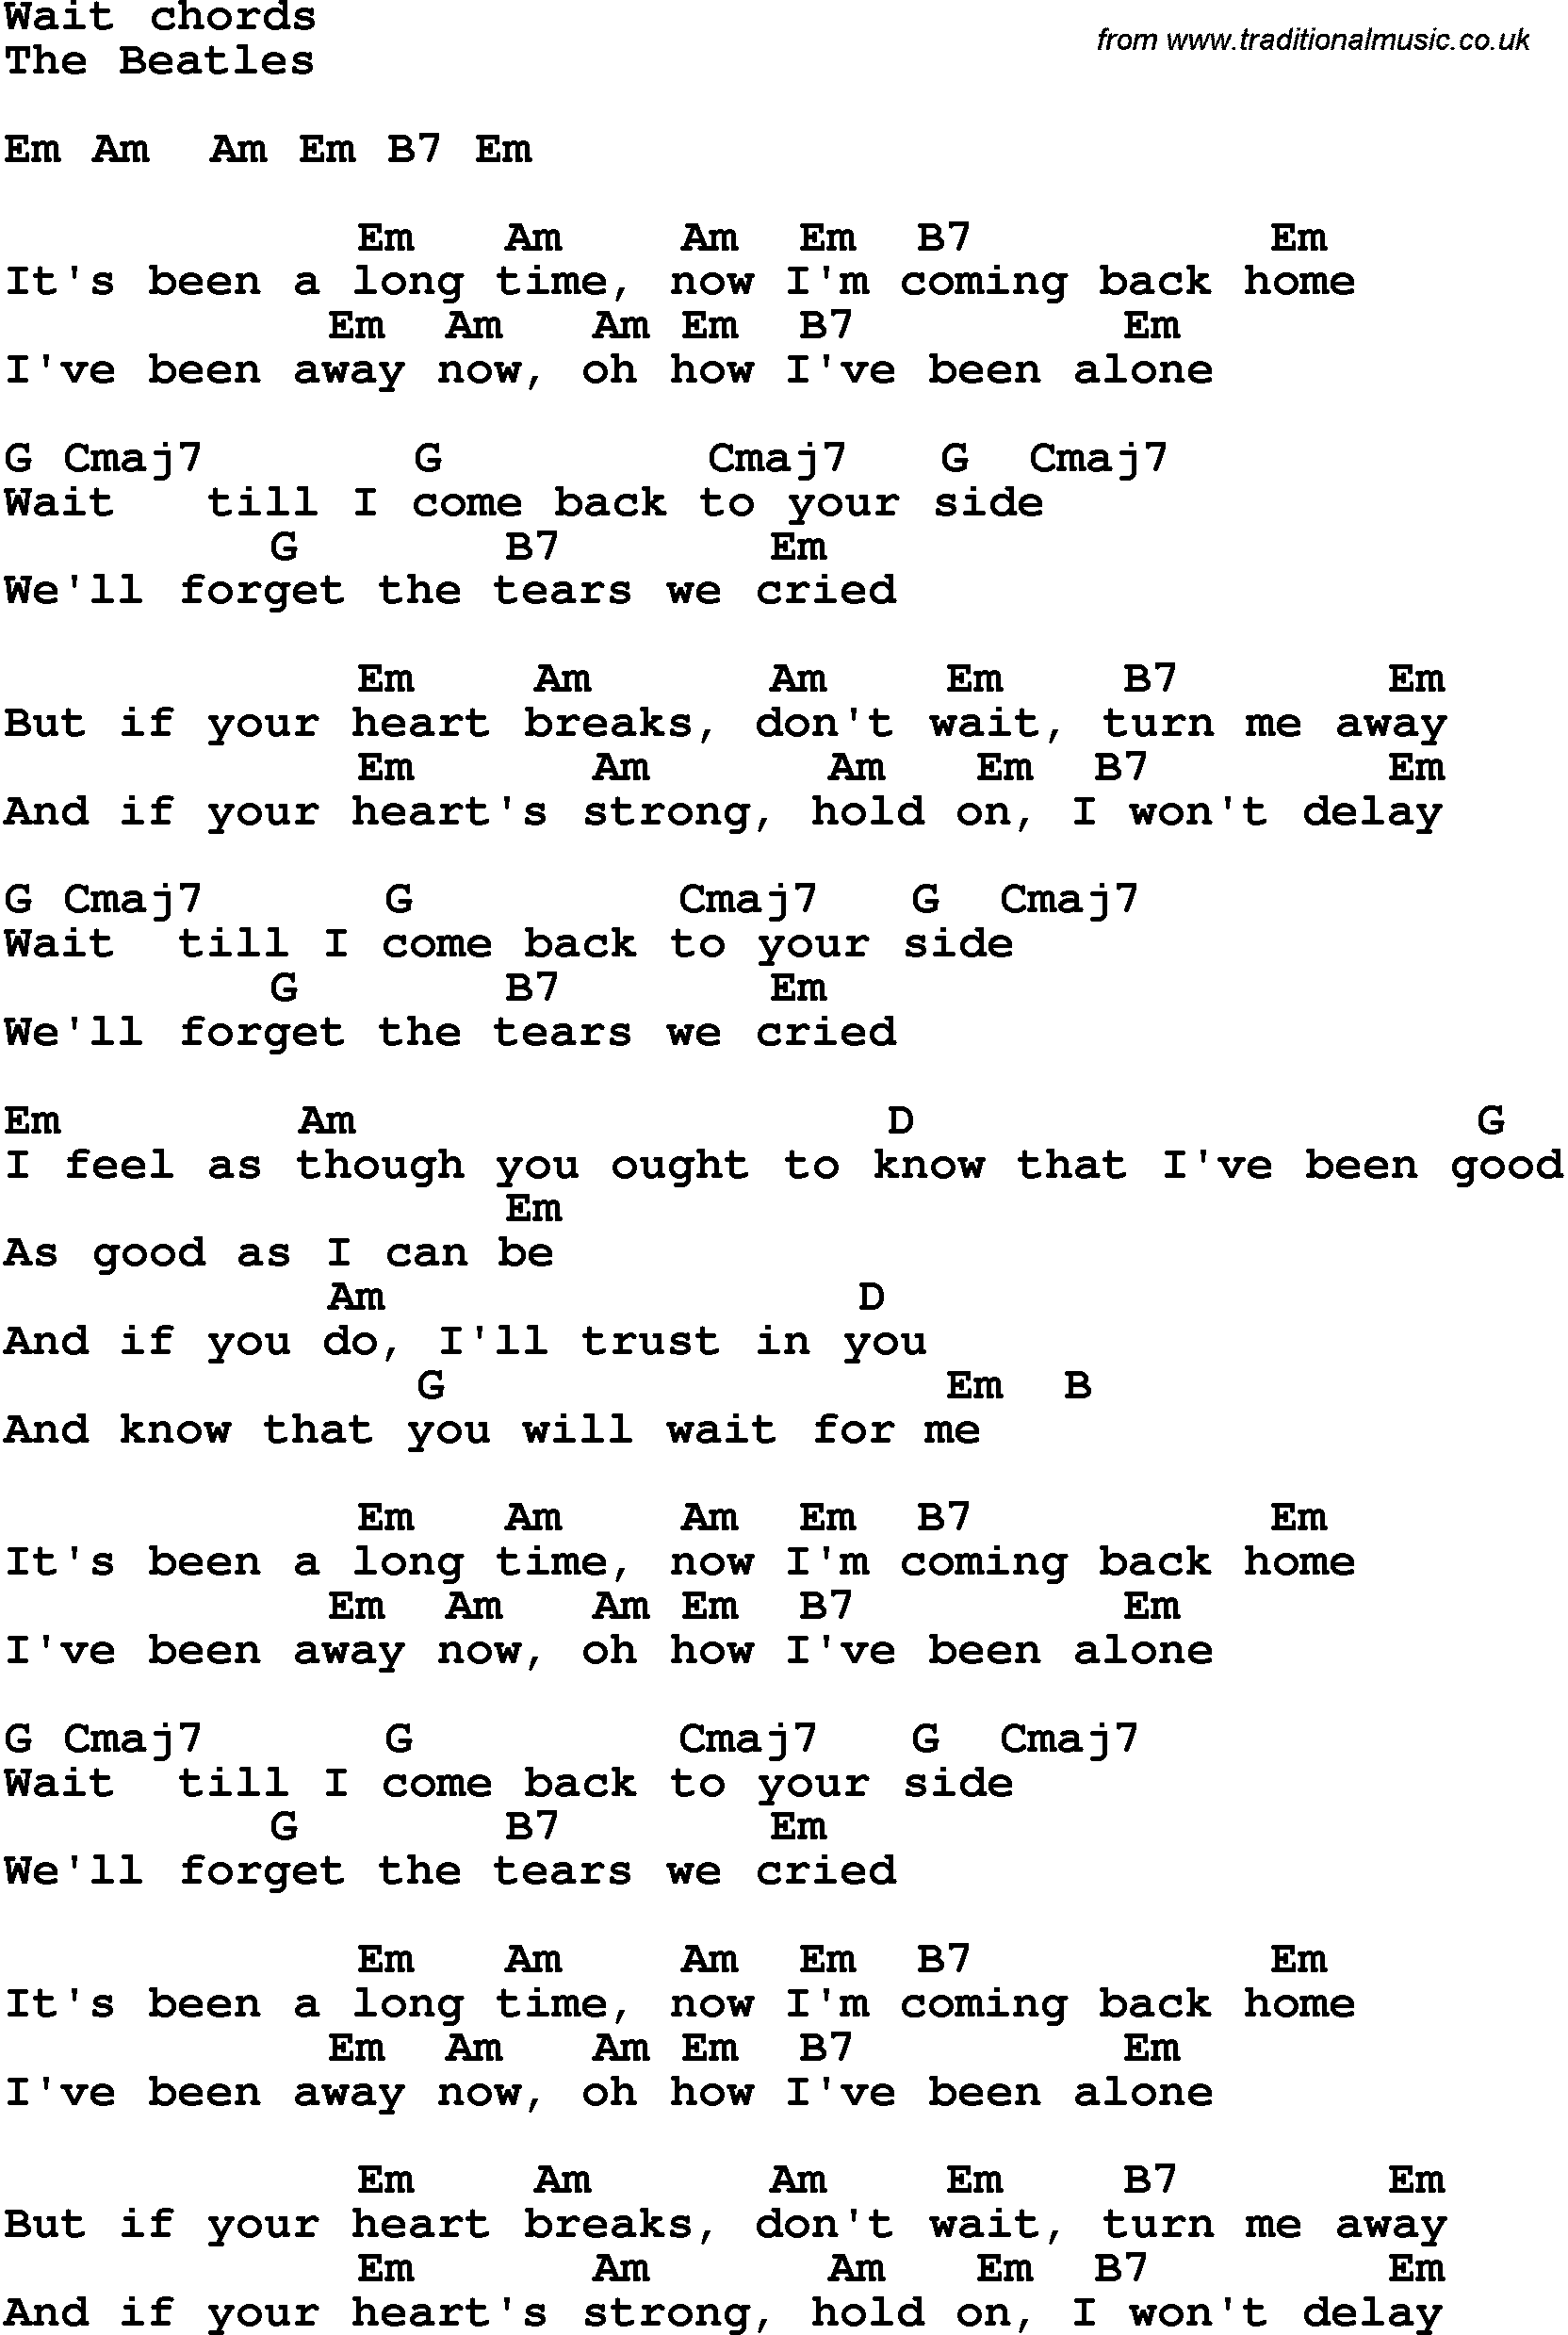 Song Lyrics With Guitar Chords For Wait